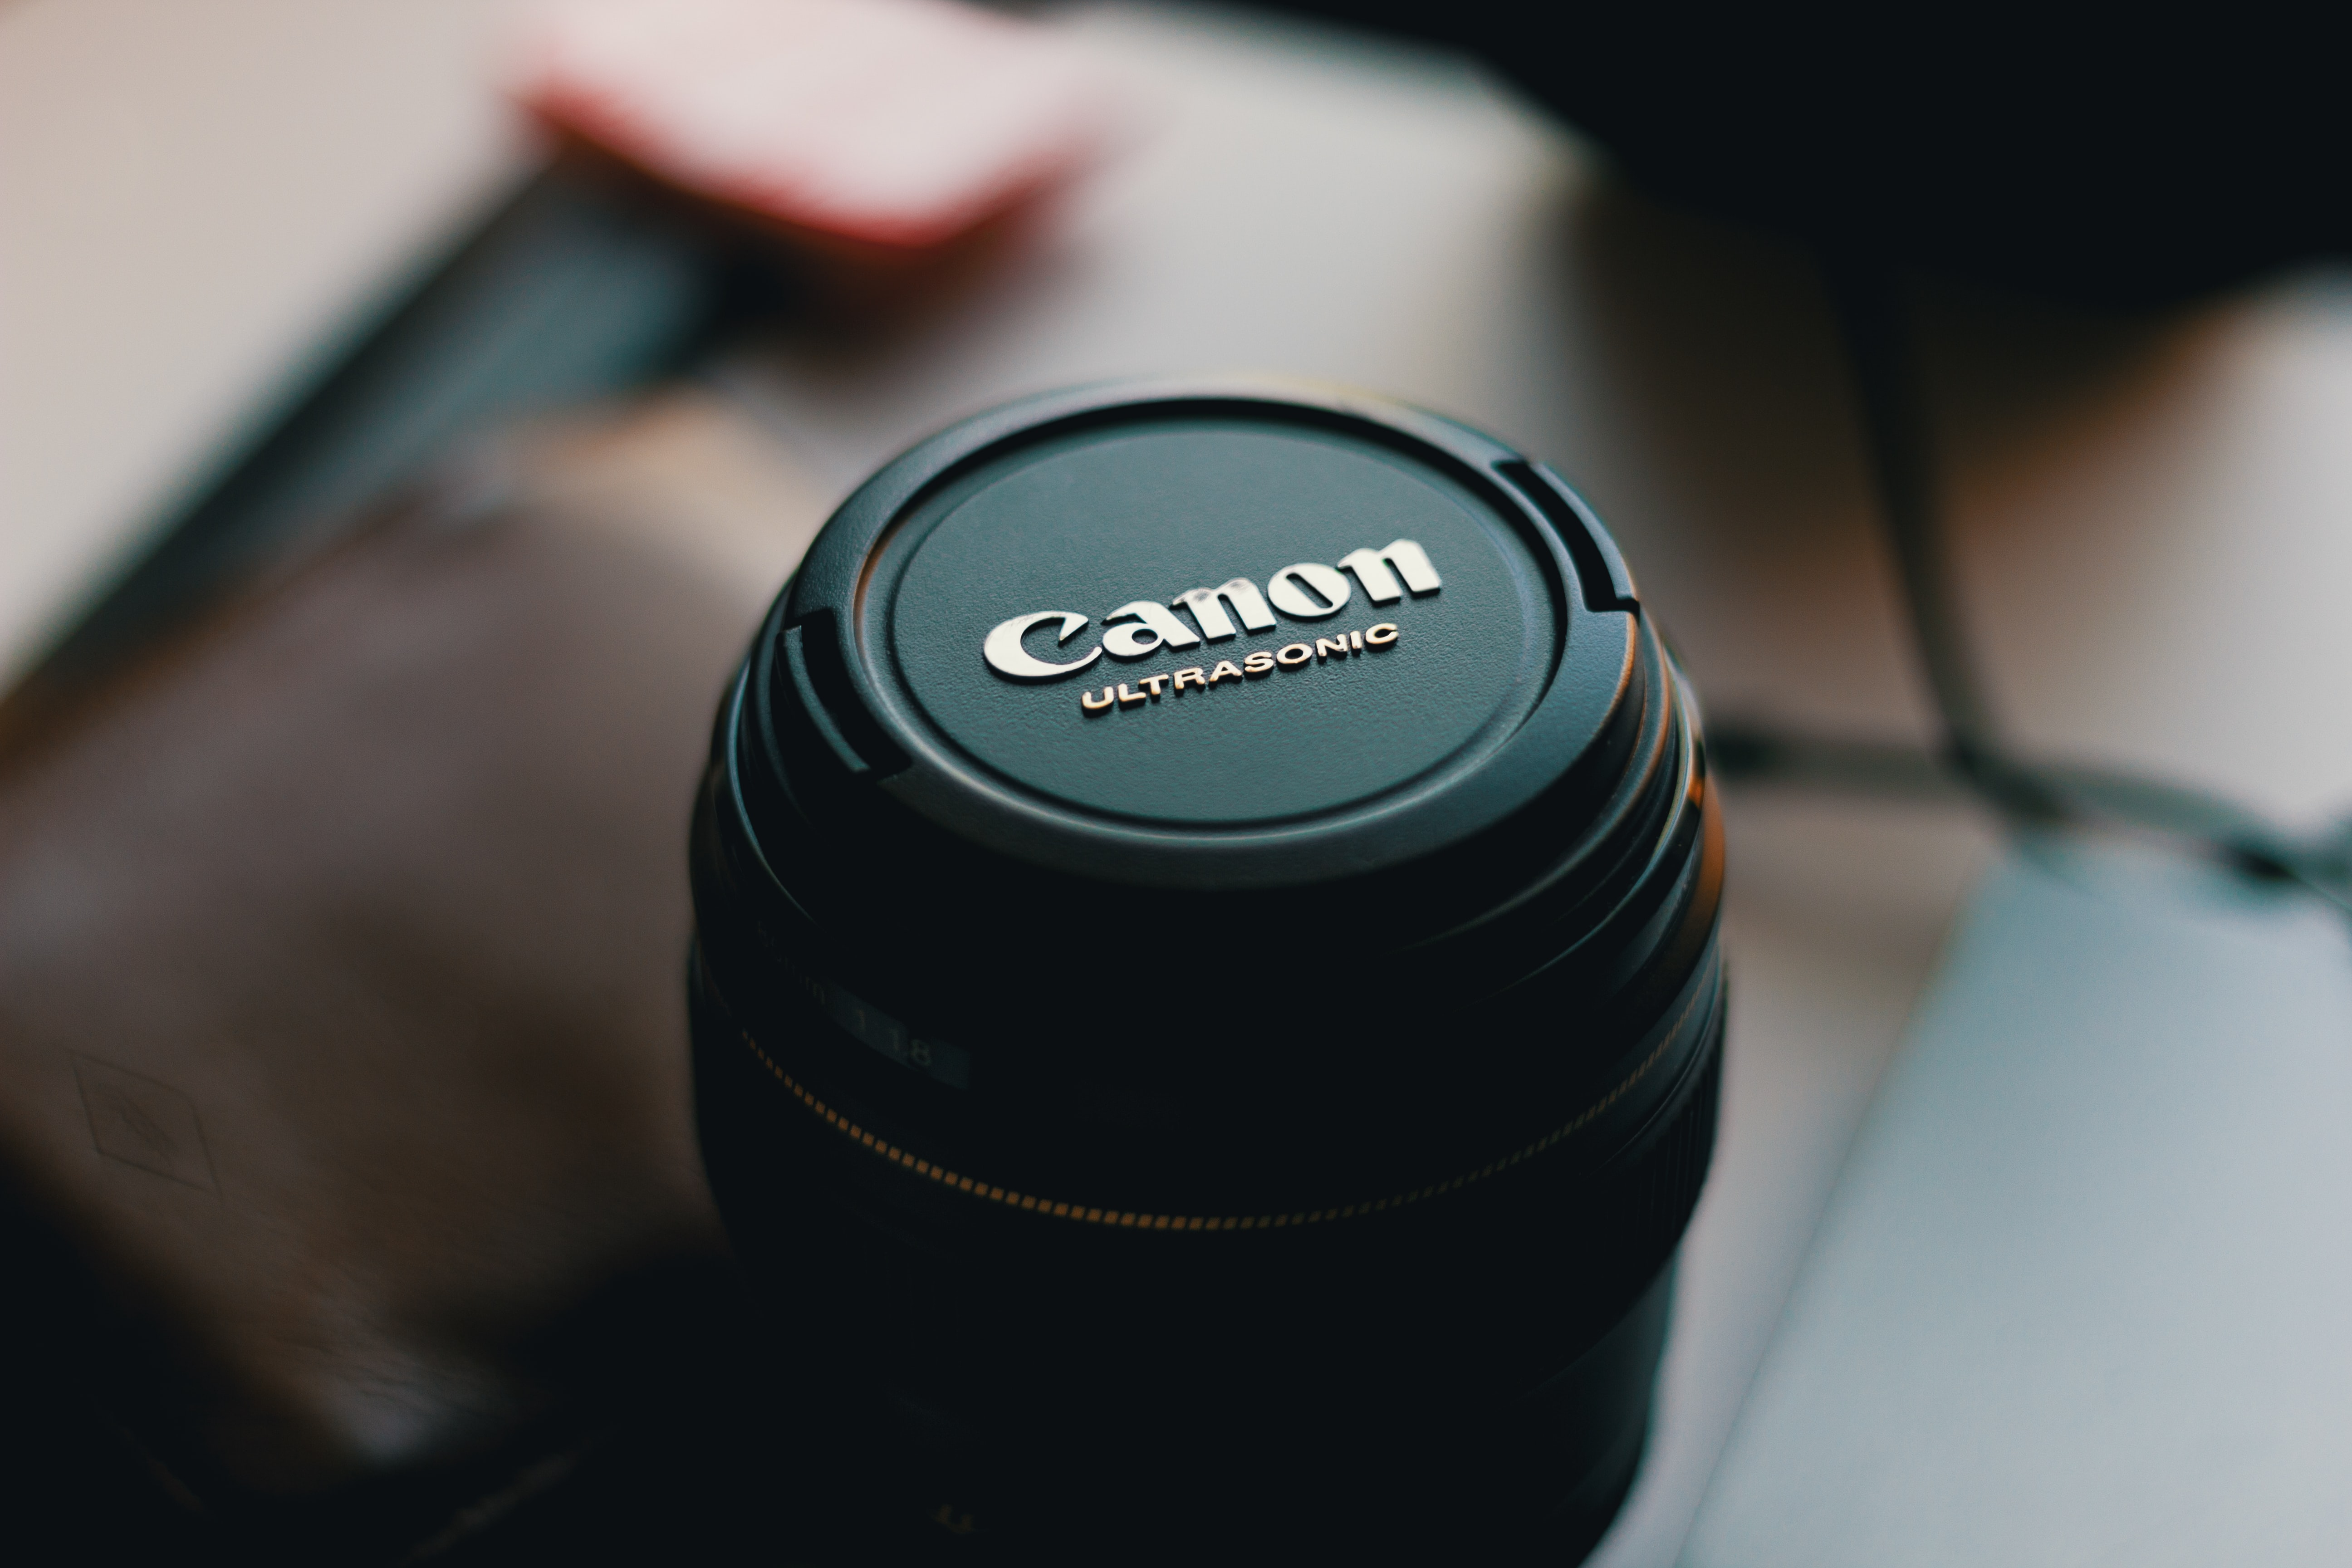 selective focus photo of Canon Ultrasonic zoom lens